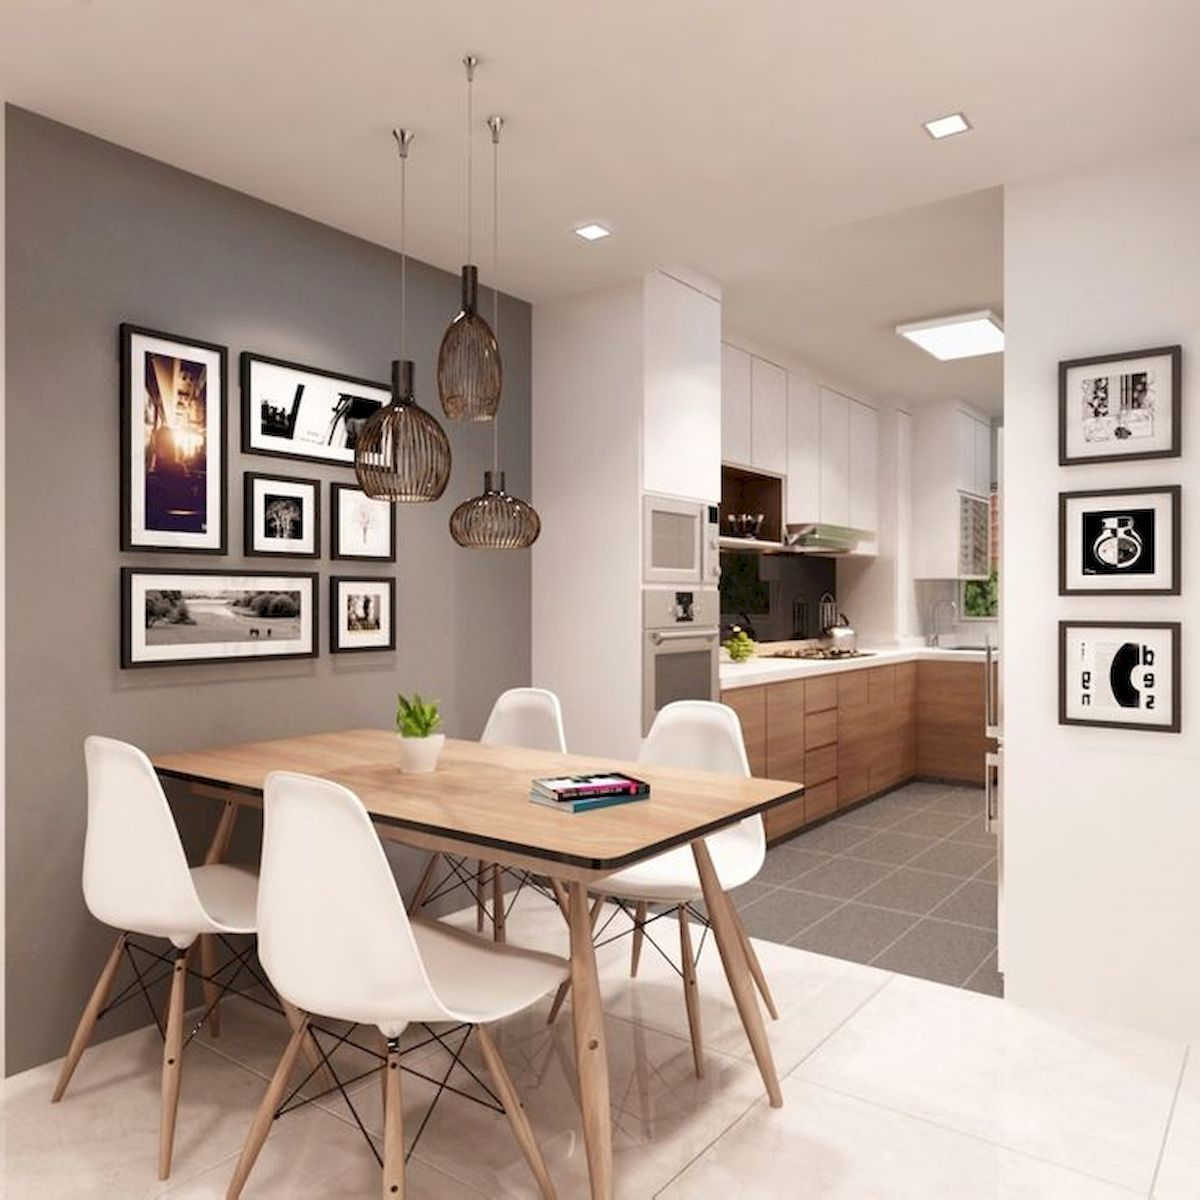 Dining Room Ideas For Small Apartments in 2020 | Apartment ...